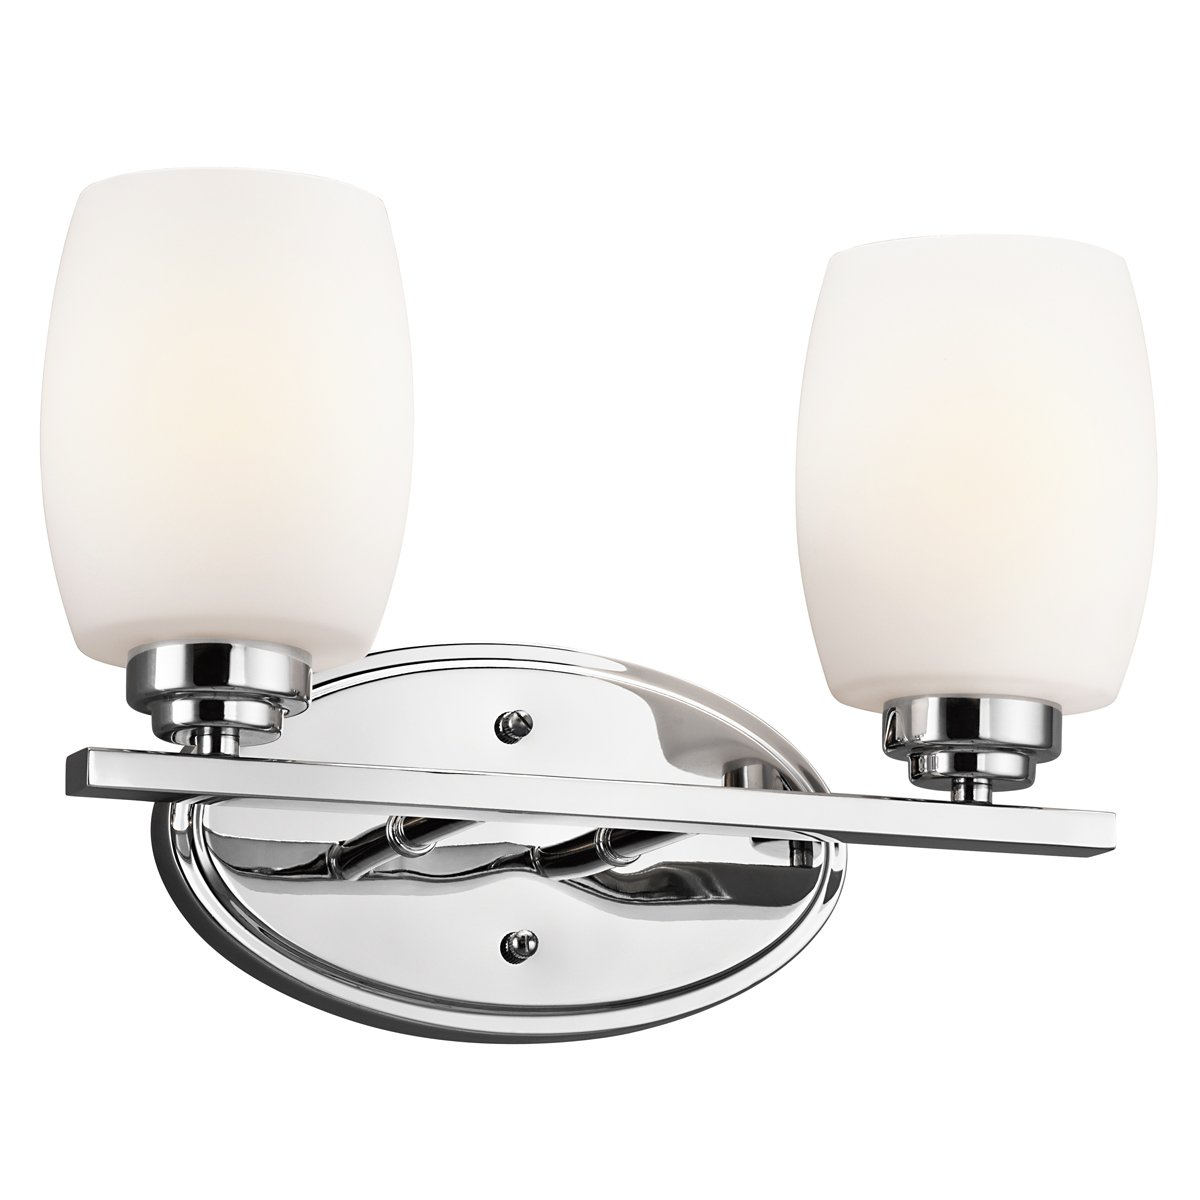 Kichler brushed nickel wall mt 1lt incandescent kichler brushed nickel - Kichler Lighting 5098ni Eileen 3 Light Bath Fixture Brushed Nickel With White Etched Glass Vanity Lighting Fixtures Amazon Com